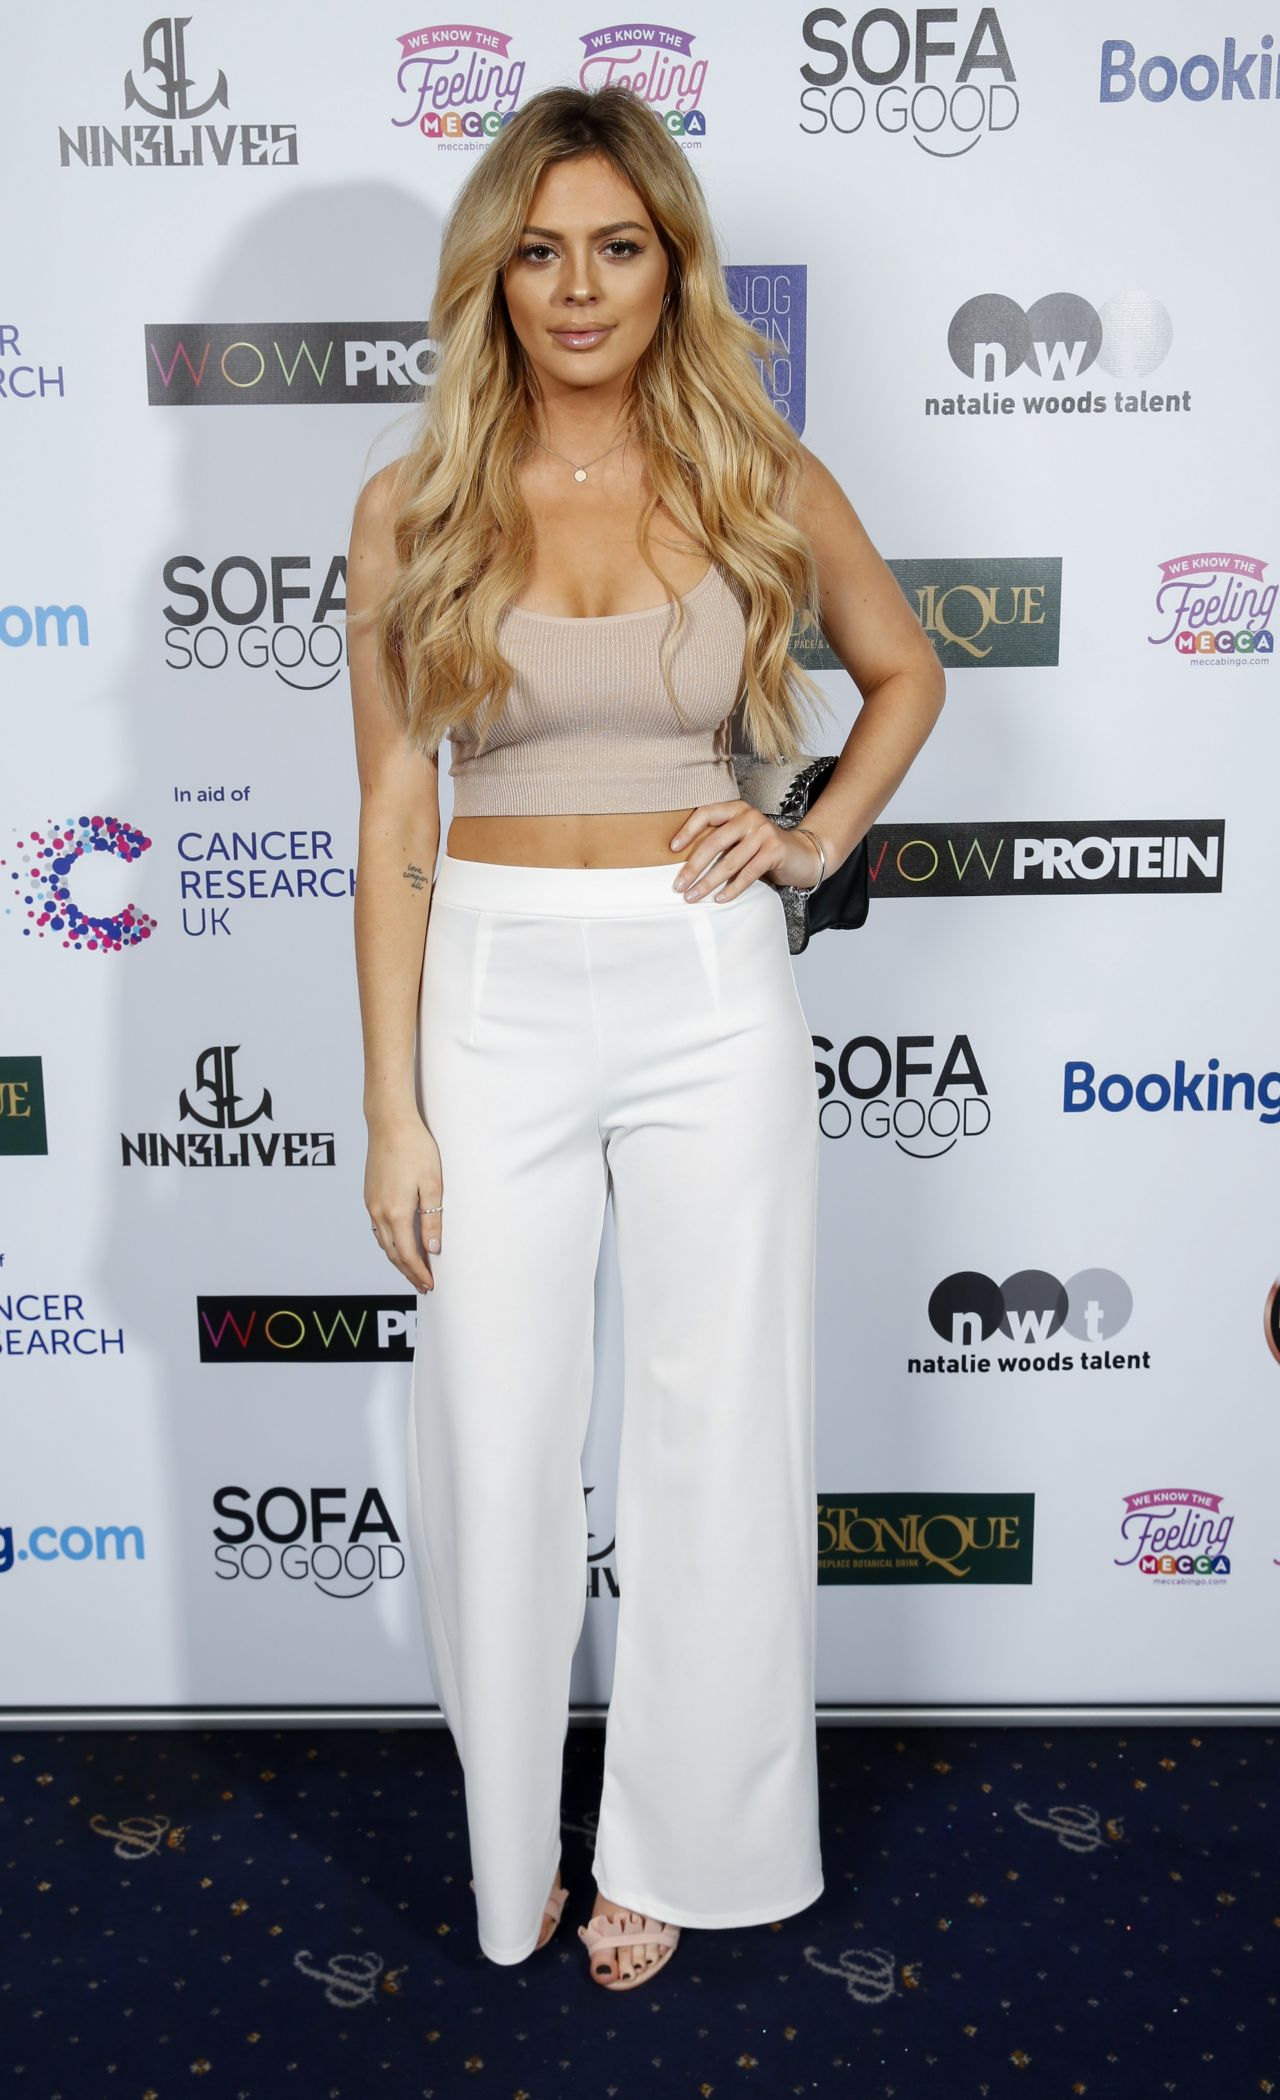 danielle-sellers-james-ingham-jog-on-to-cancer-charity-event-in-london-4.jpg